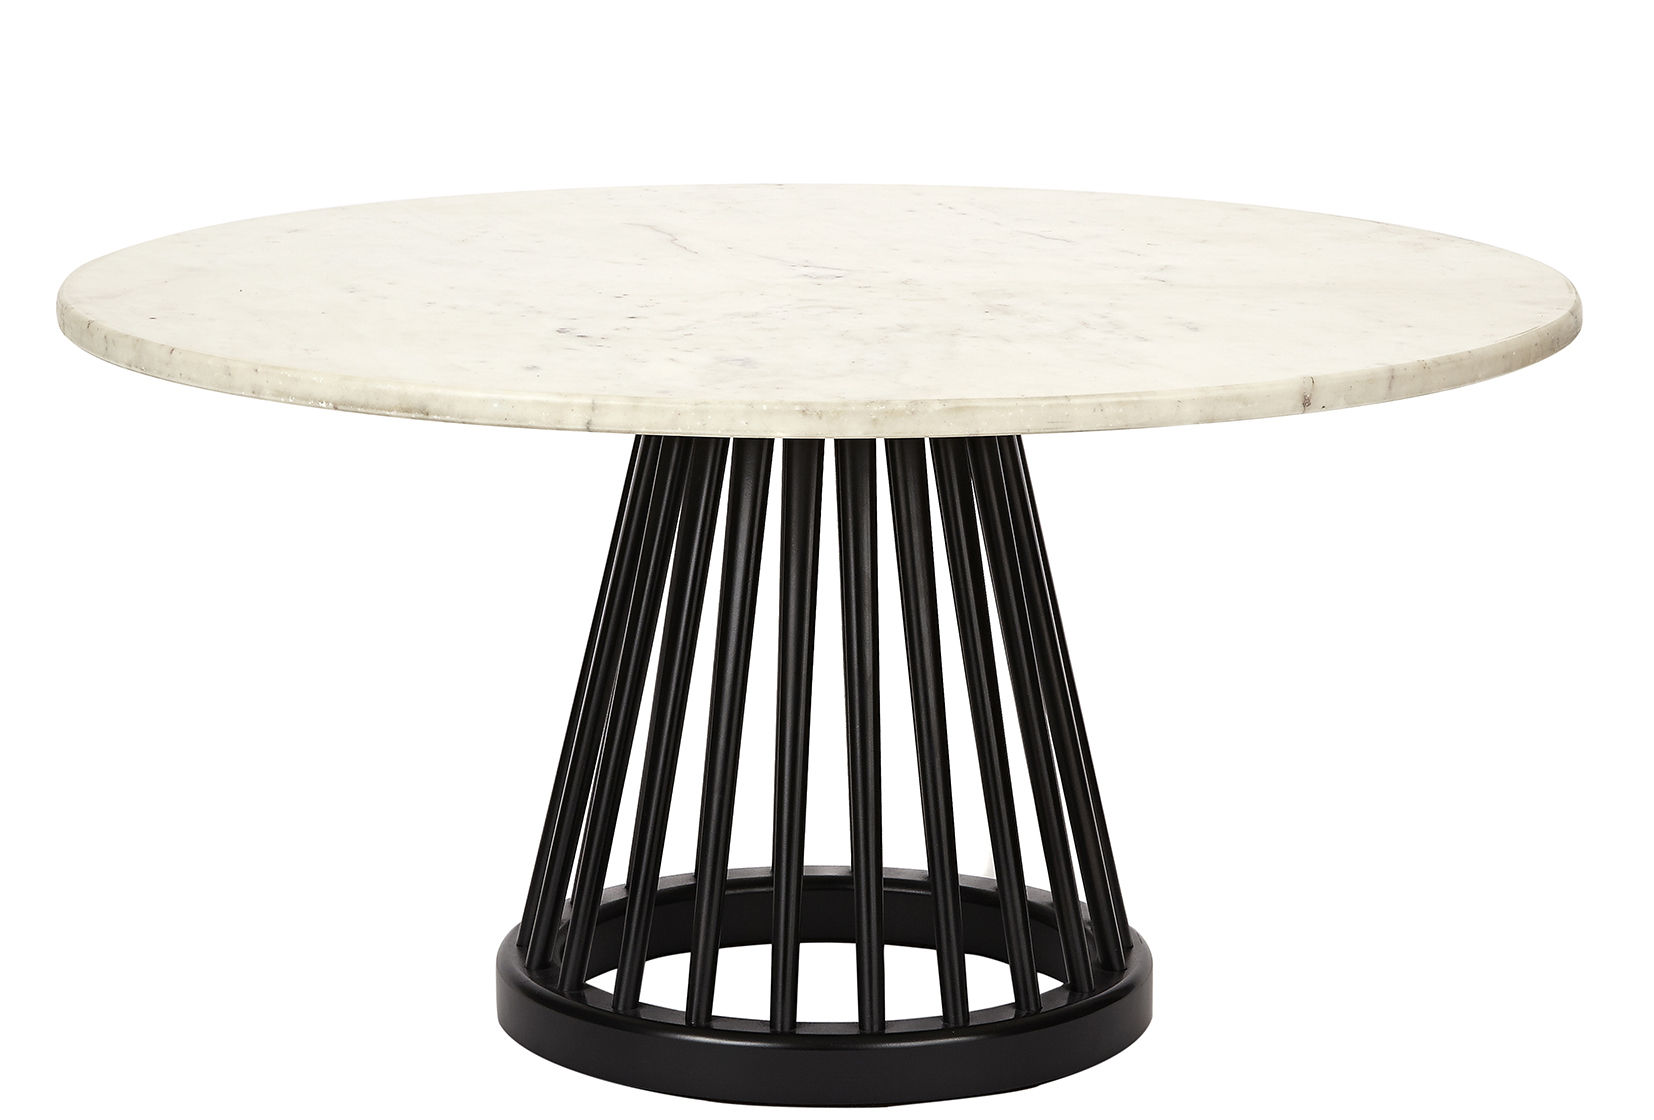 Mobilier - Tables basses - Table basse Fan / Ø 90 cm - Tom Dixon - Structure noire / Plateau marbre blanc - Bouleau teinté, Marbre